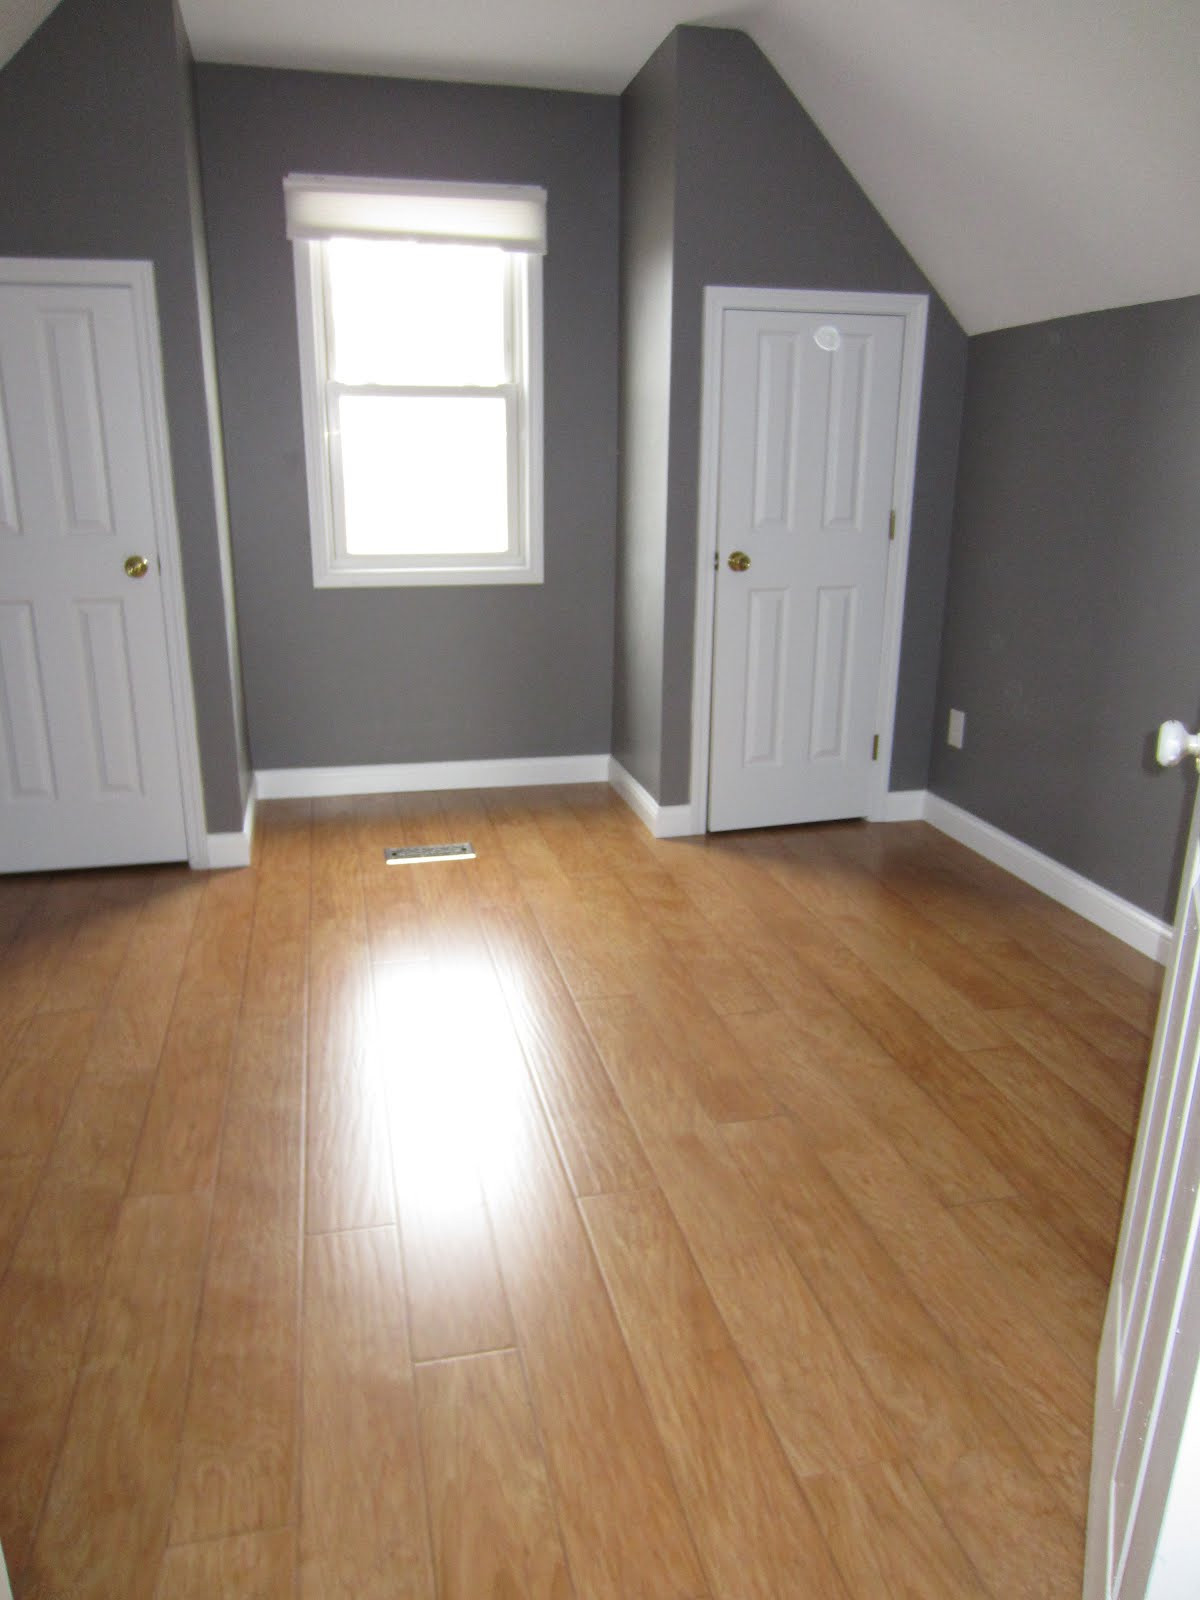 sanding painted hardwood floors of 45 beautiful painting concrete floors inside house sokitchenlv throughout painting concrete floors inside house best of delightful paint woodrs without sanding them distressed white colors